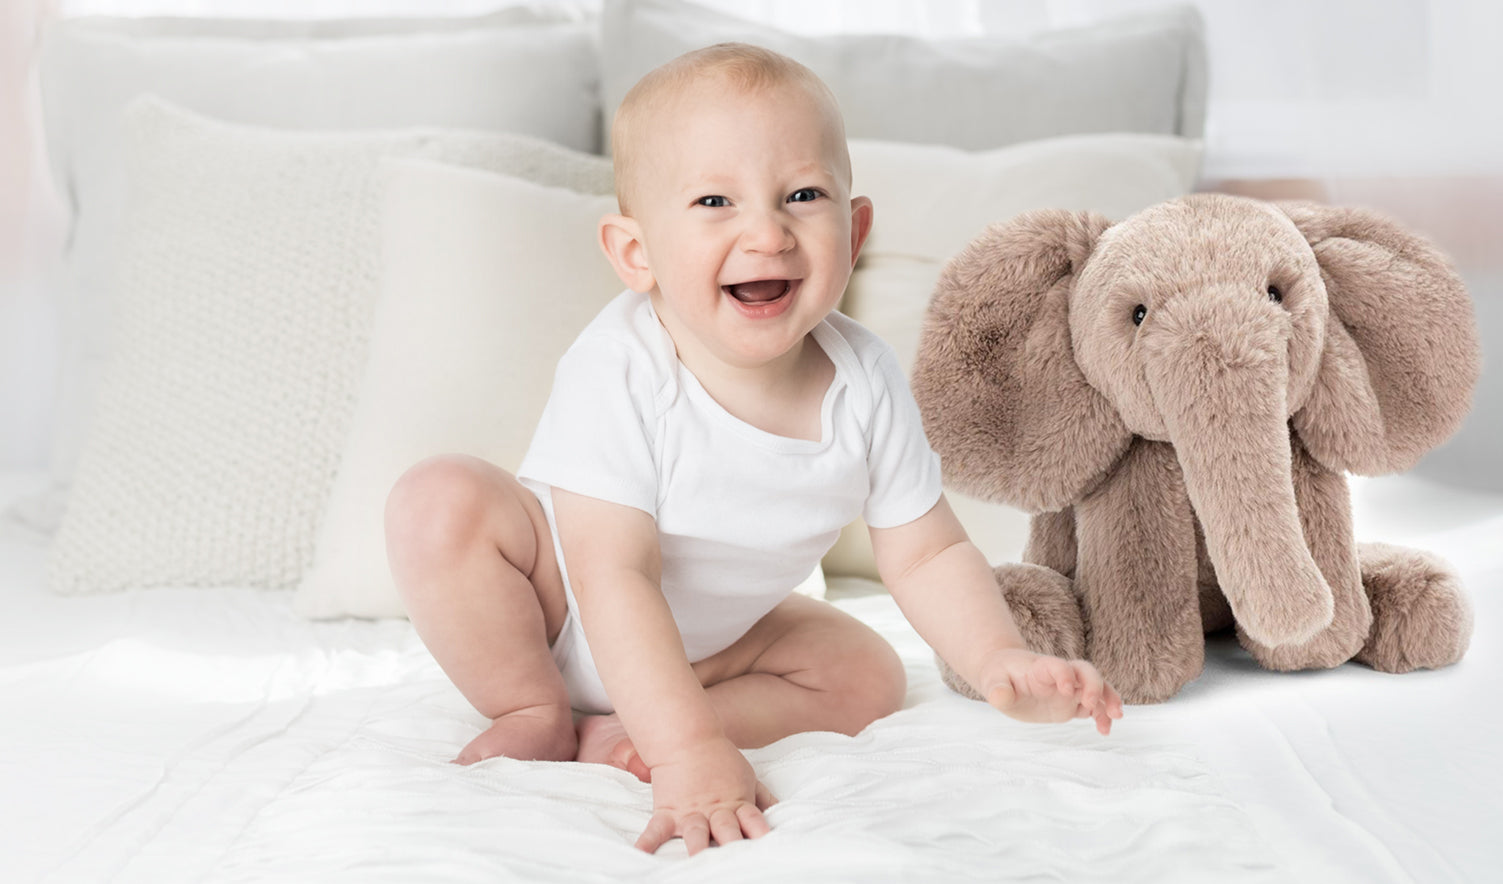 Baby with Stuffed Elephant toy